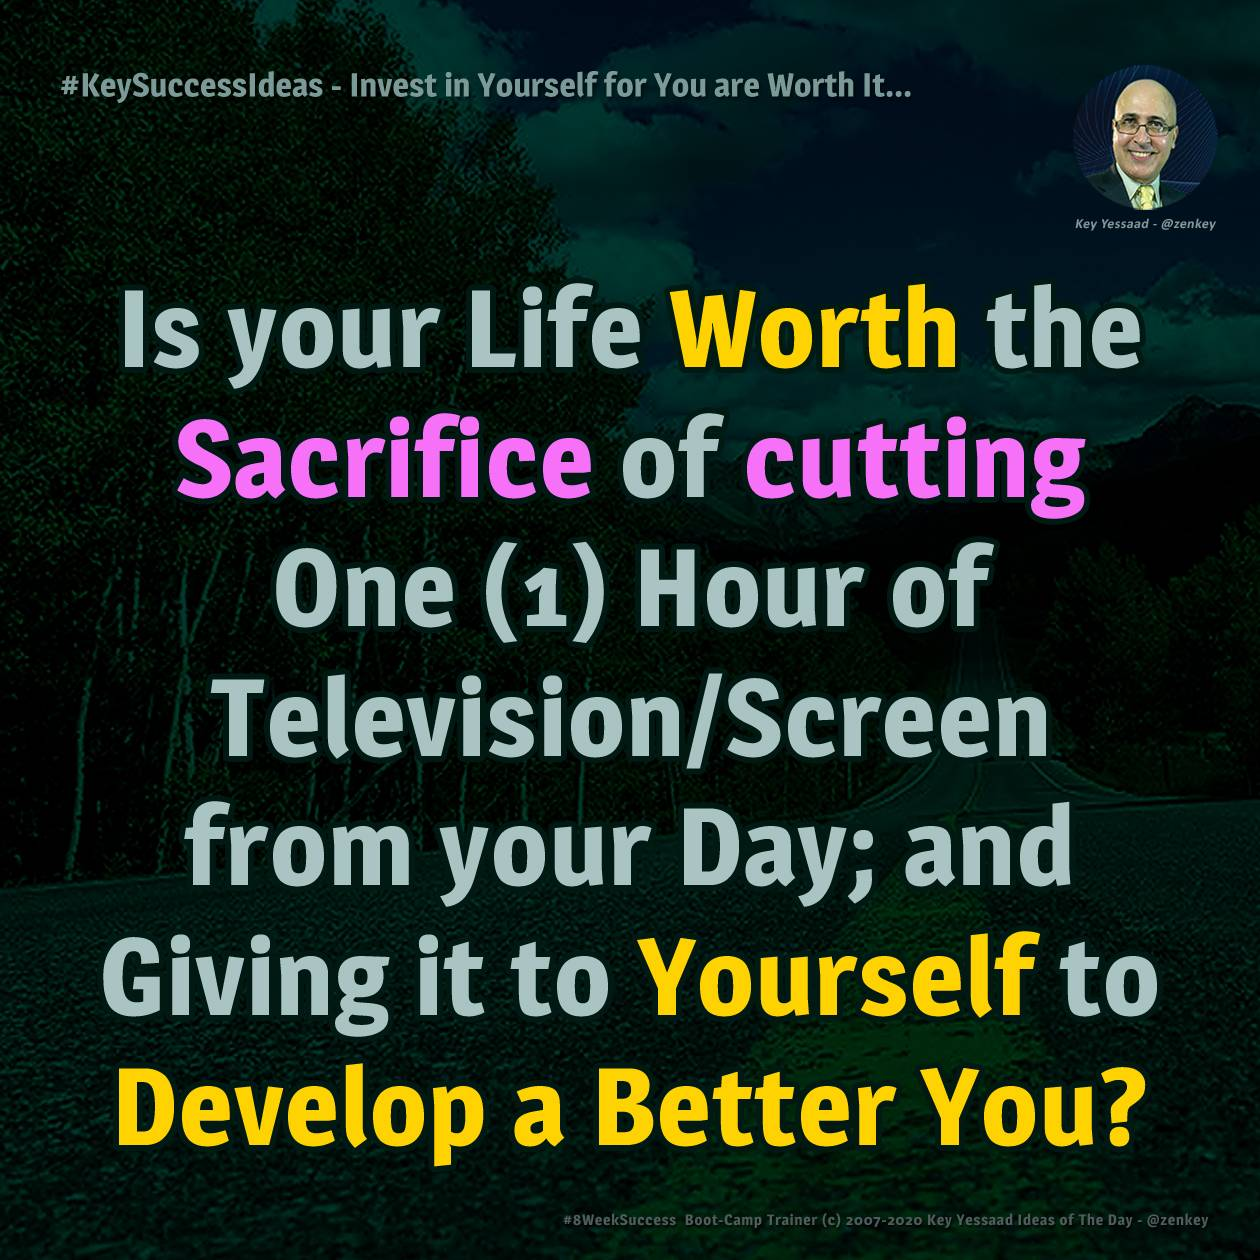 #KeySuccessIdeas - Invest in Yourself for You are Worth It...